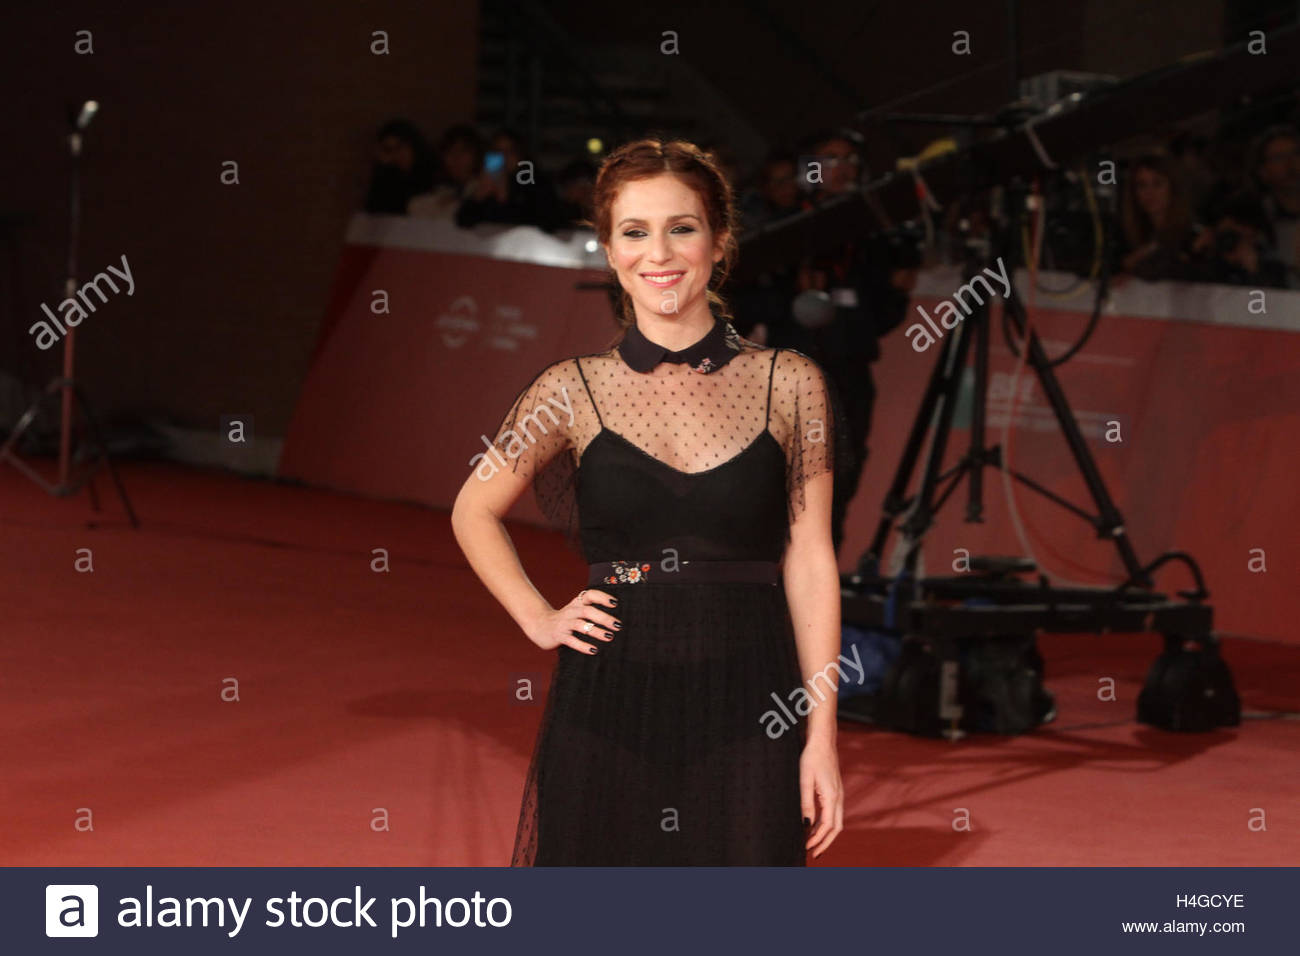 Rome, Italy. 15th Oct, 2016. Italian actress Isabella Ragonese as seen at a red carpet event for Italian film 'Sole, - Stock Image